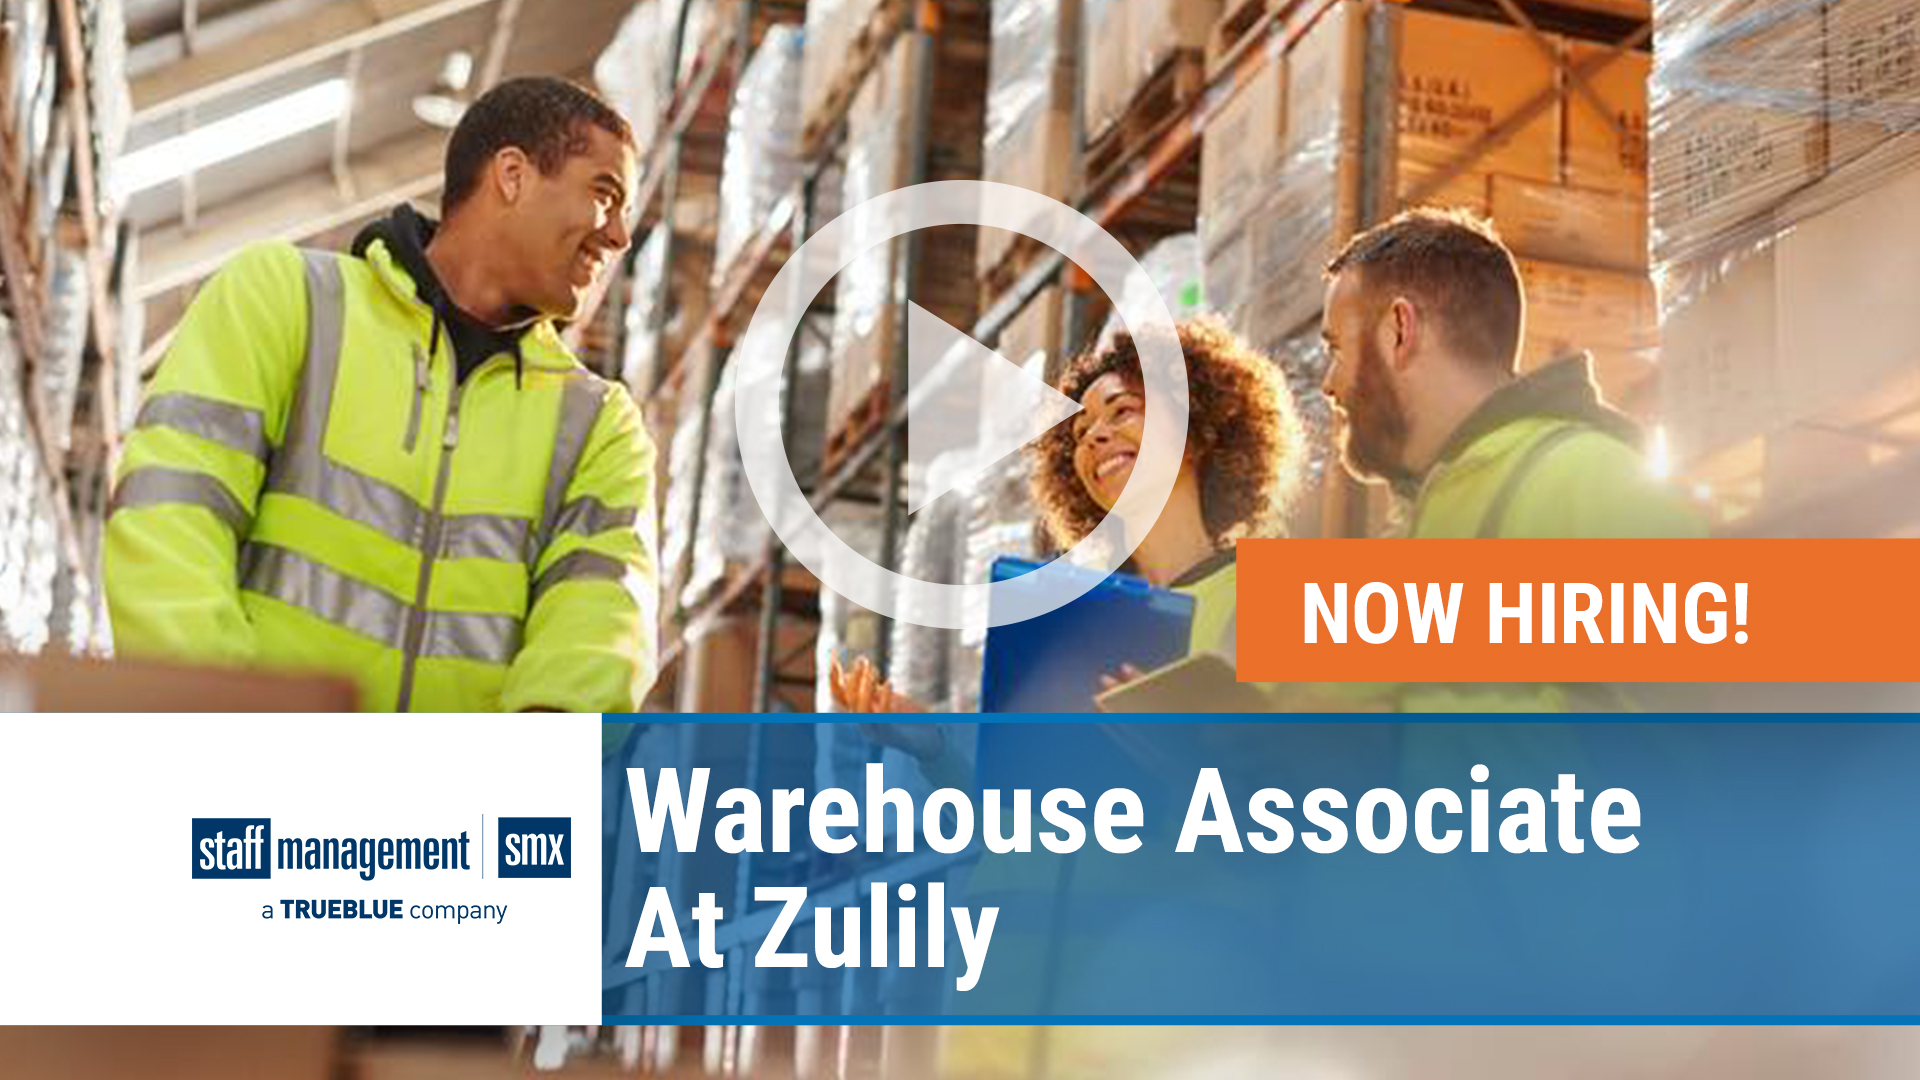 Watch our careers video for available job opening Warehouse Associate at zulily in McCarran, NV